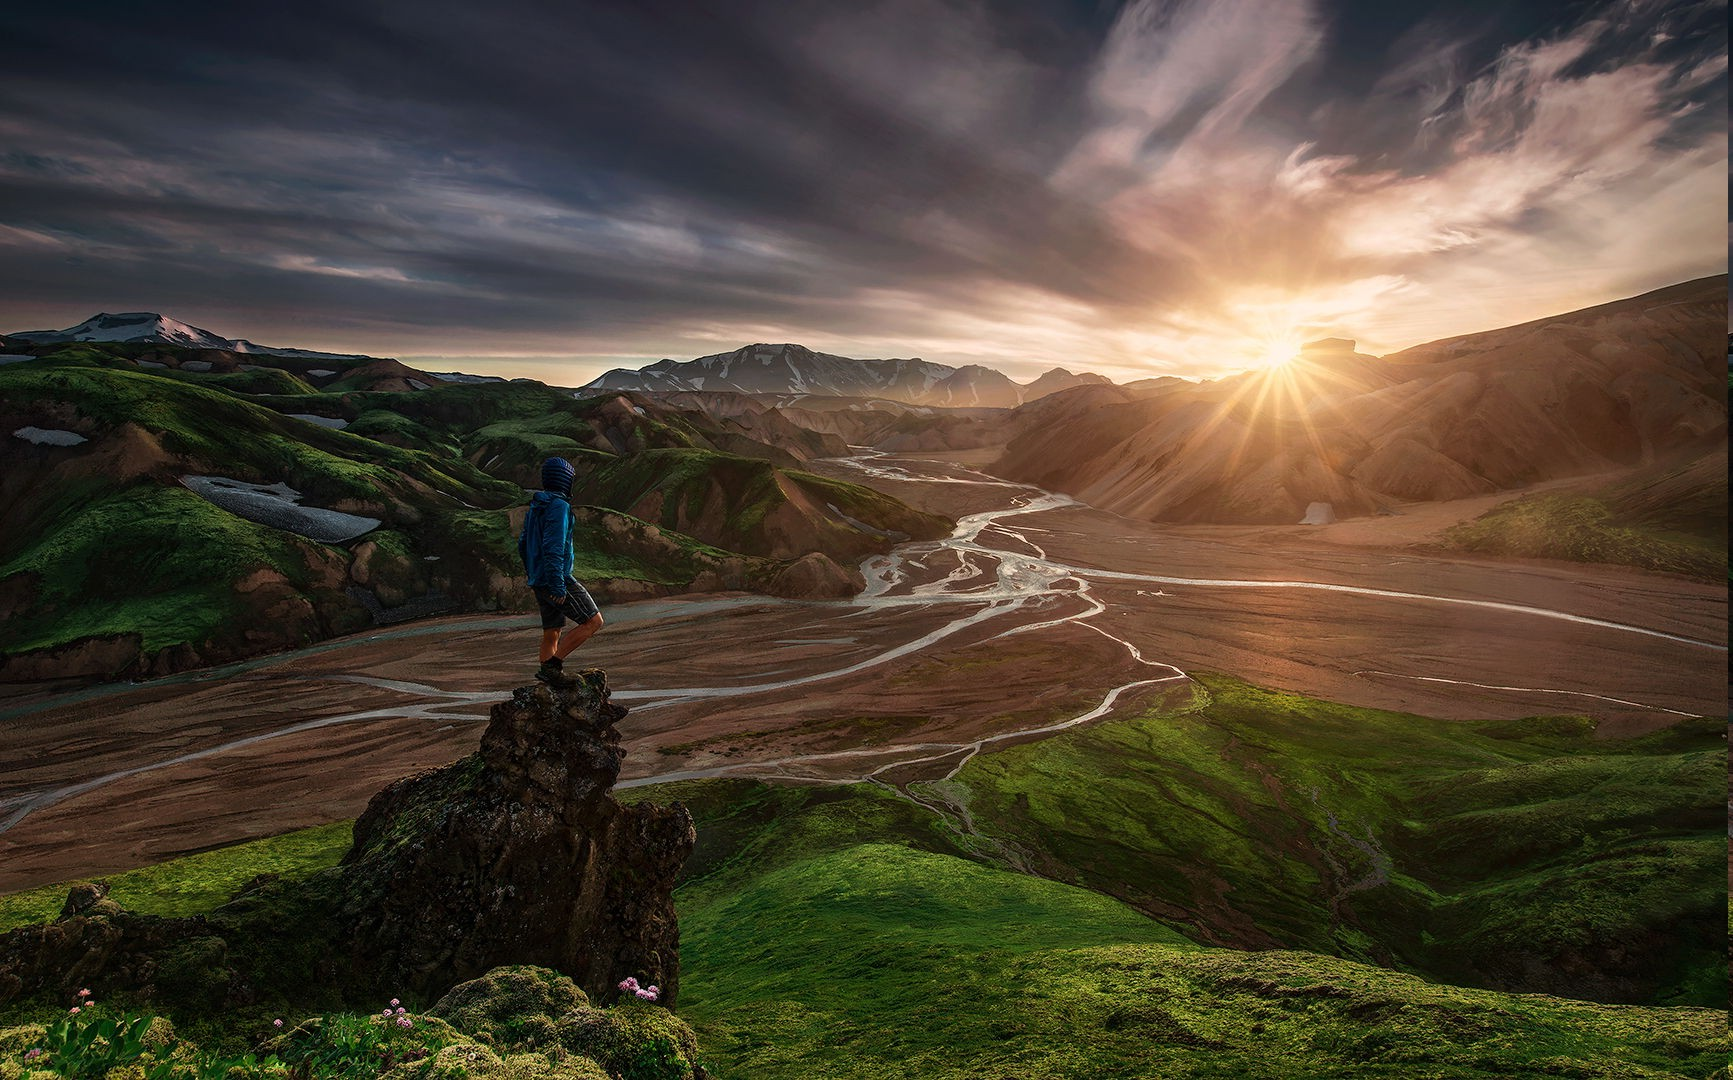 Beautiful Animal Pictures Wallpaper Landscape Max Rive Nature River Mountain Wallpapers Hd